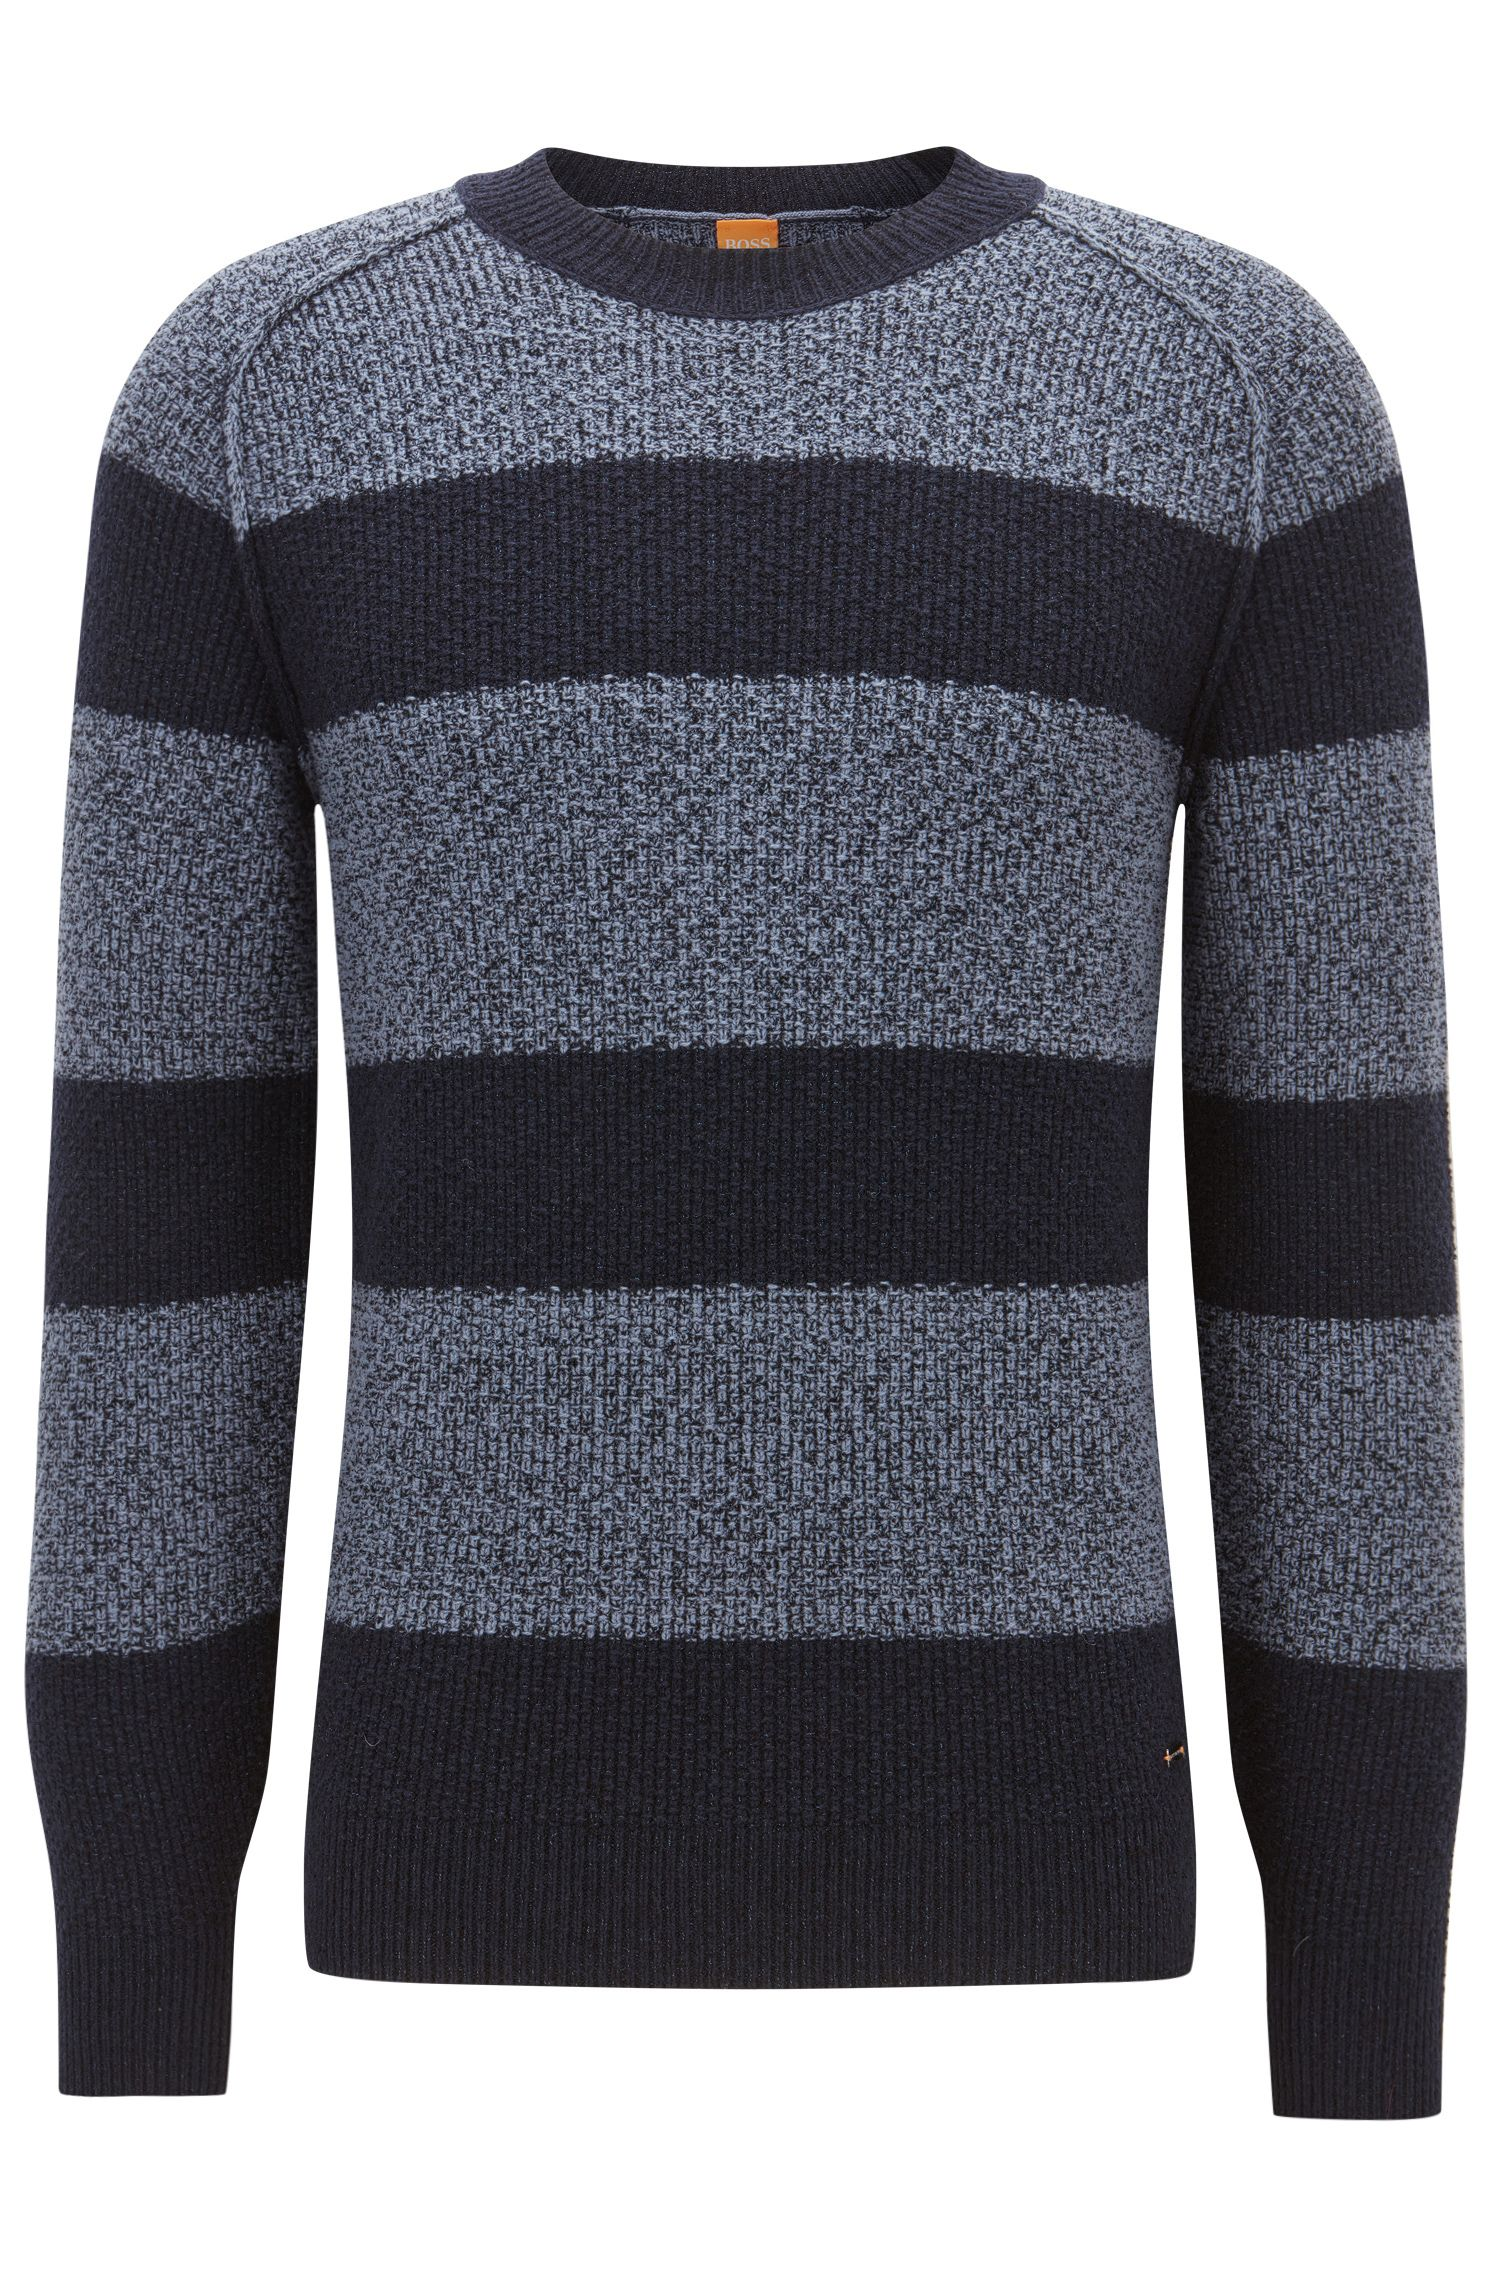 'Arbieri' | Striped Cotton-Wool Blend Sweater